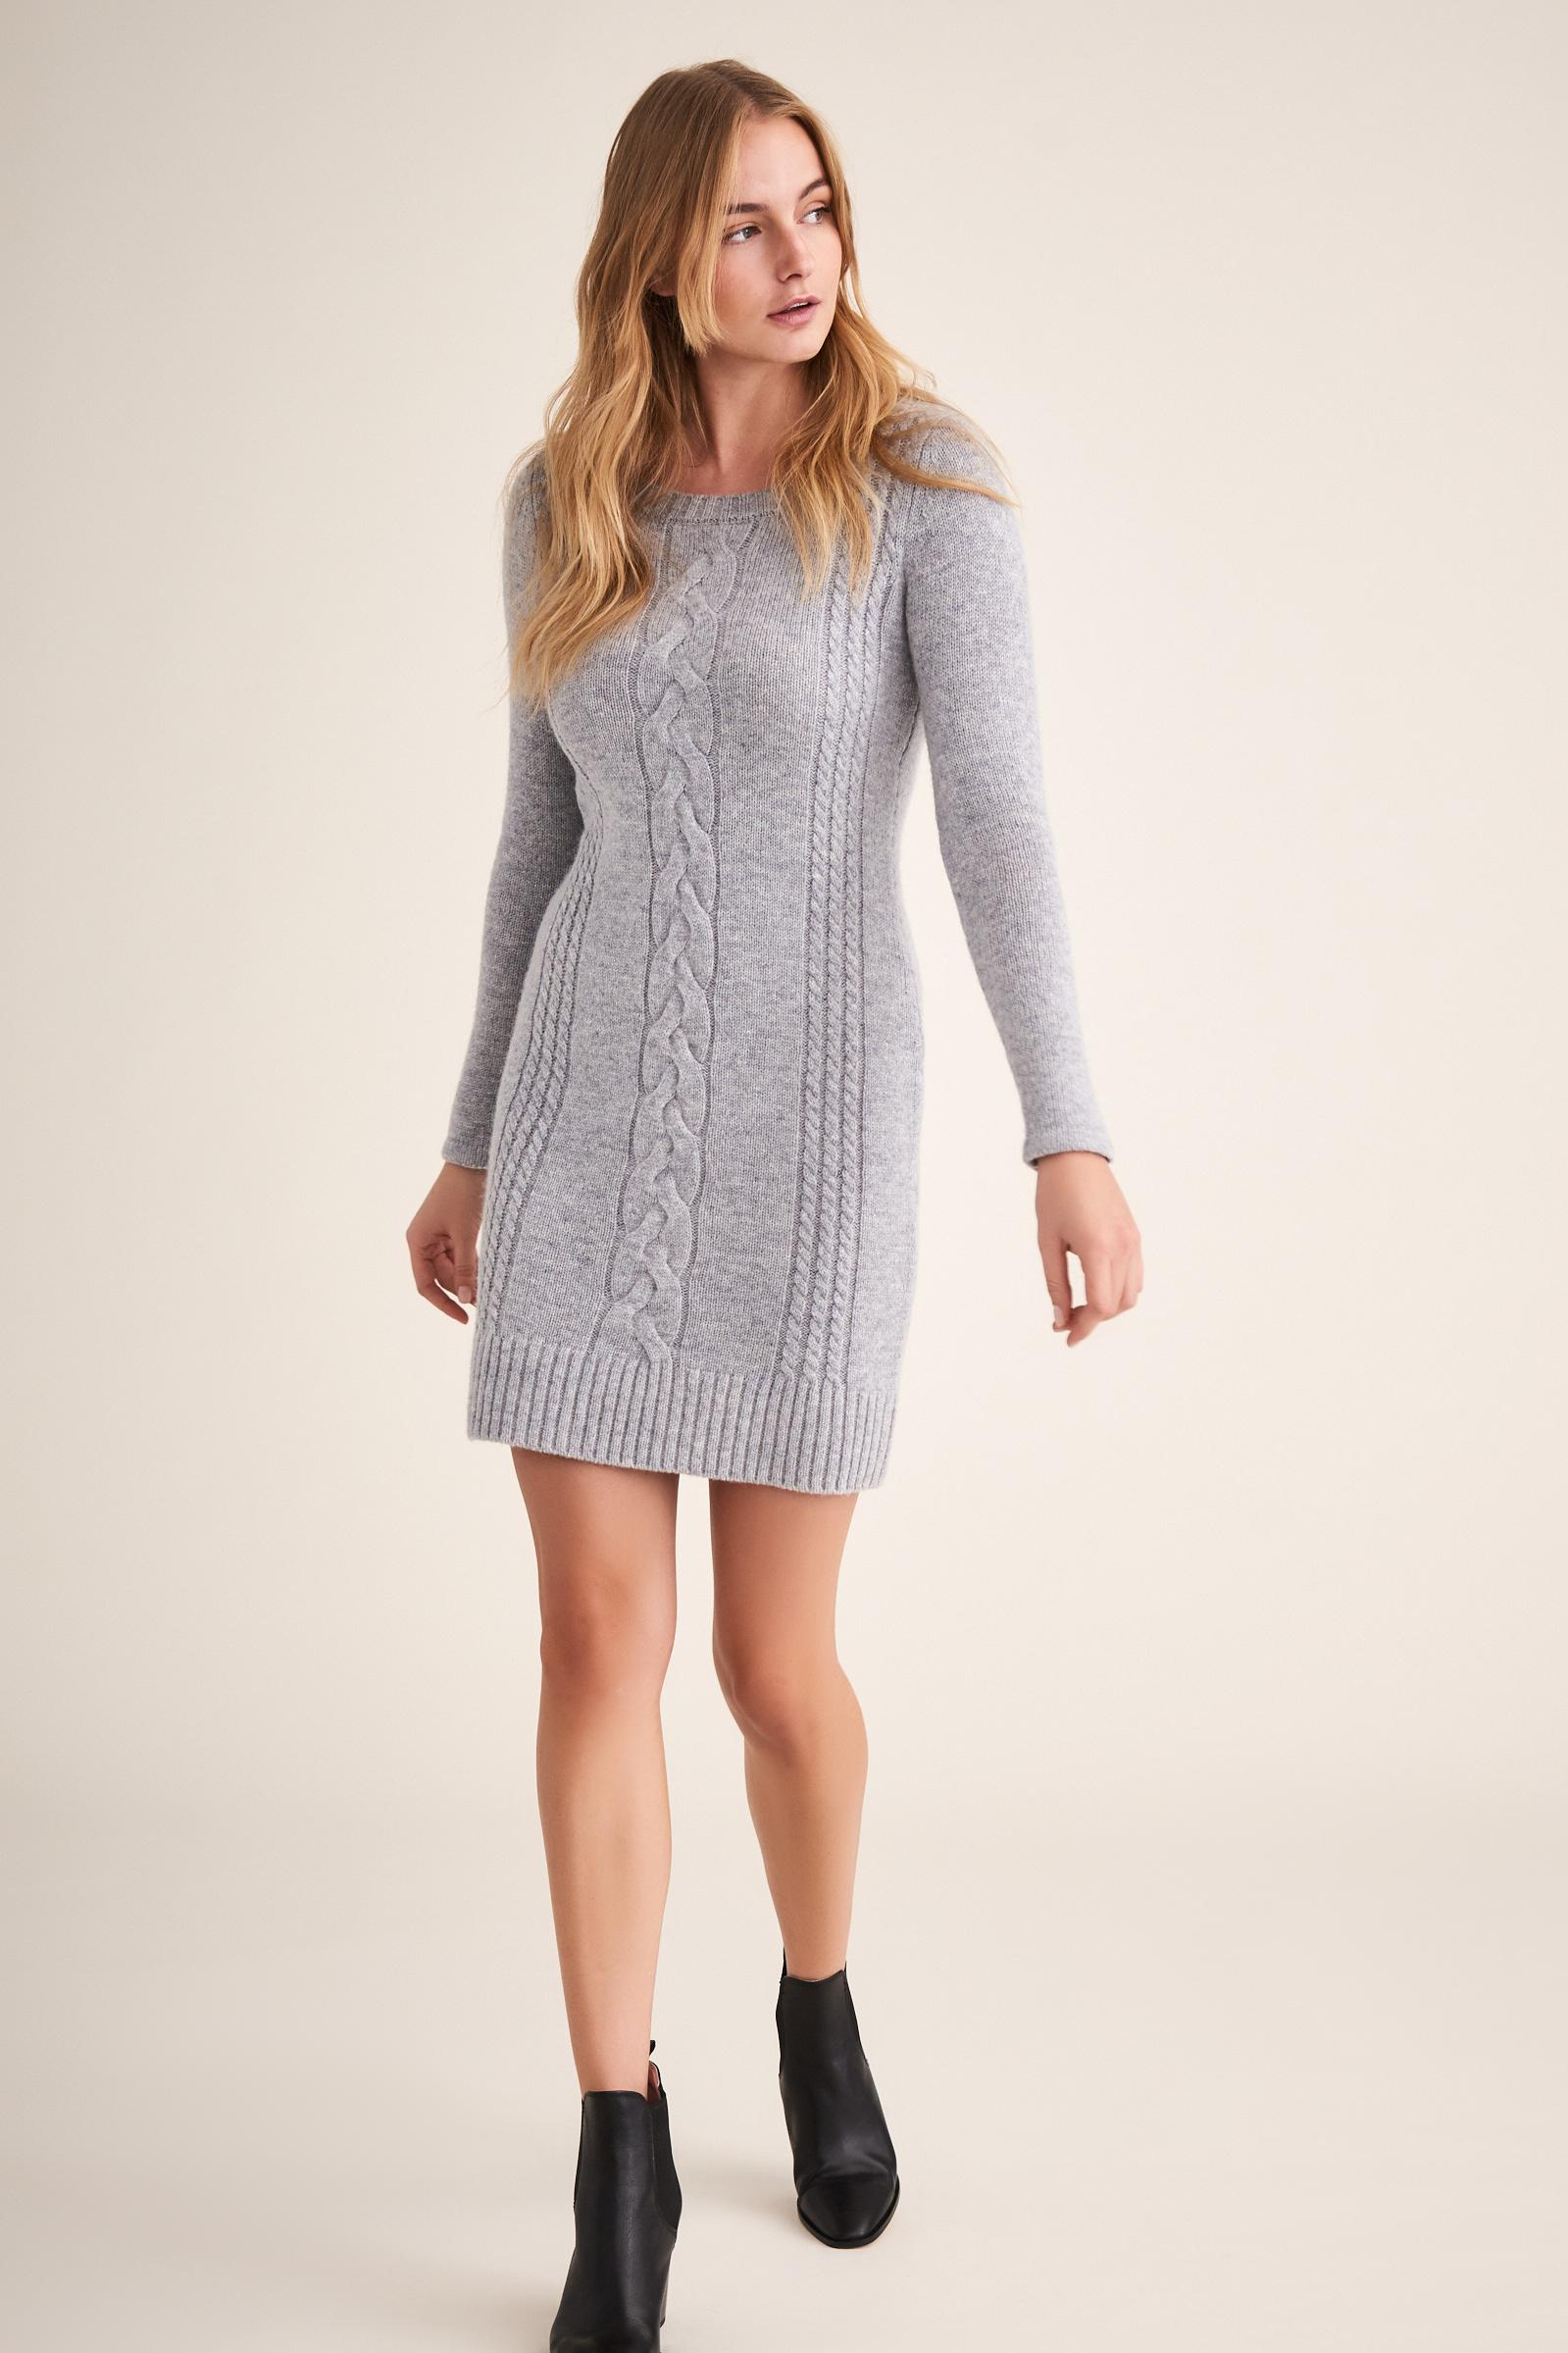 LADIES' KNITTED DRESS PETIKA